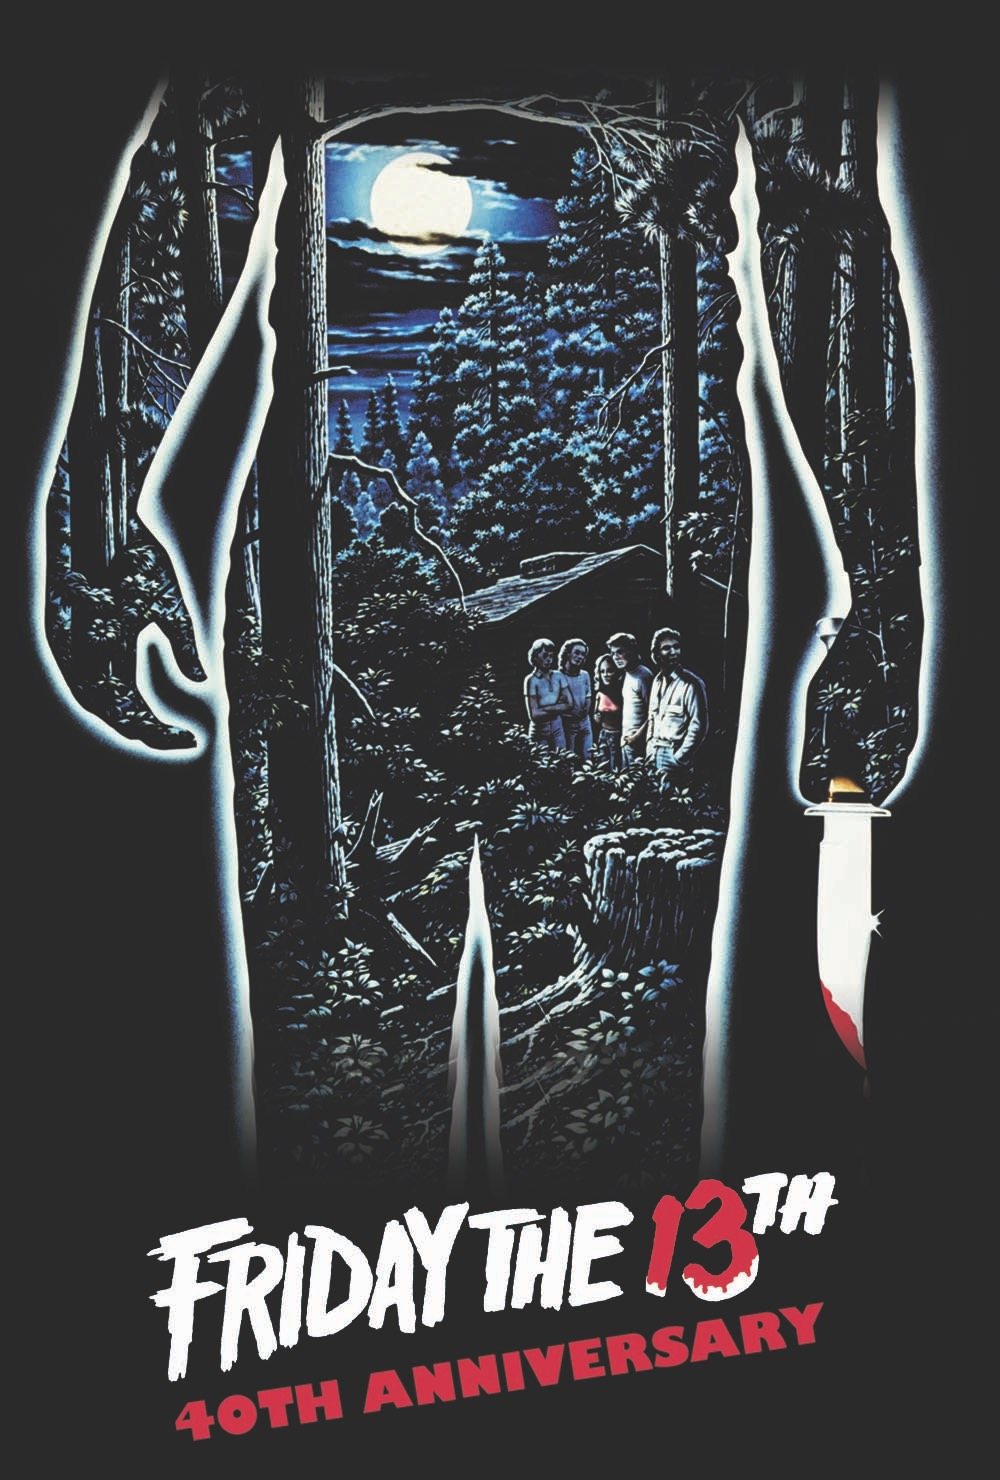 Friday the 13th 40th Anniversary